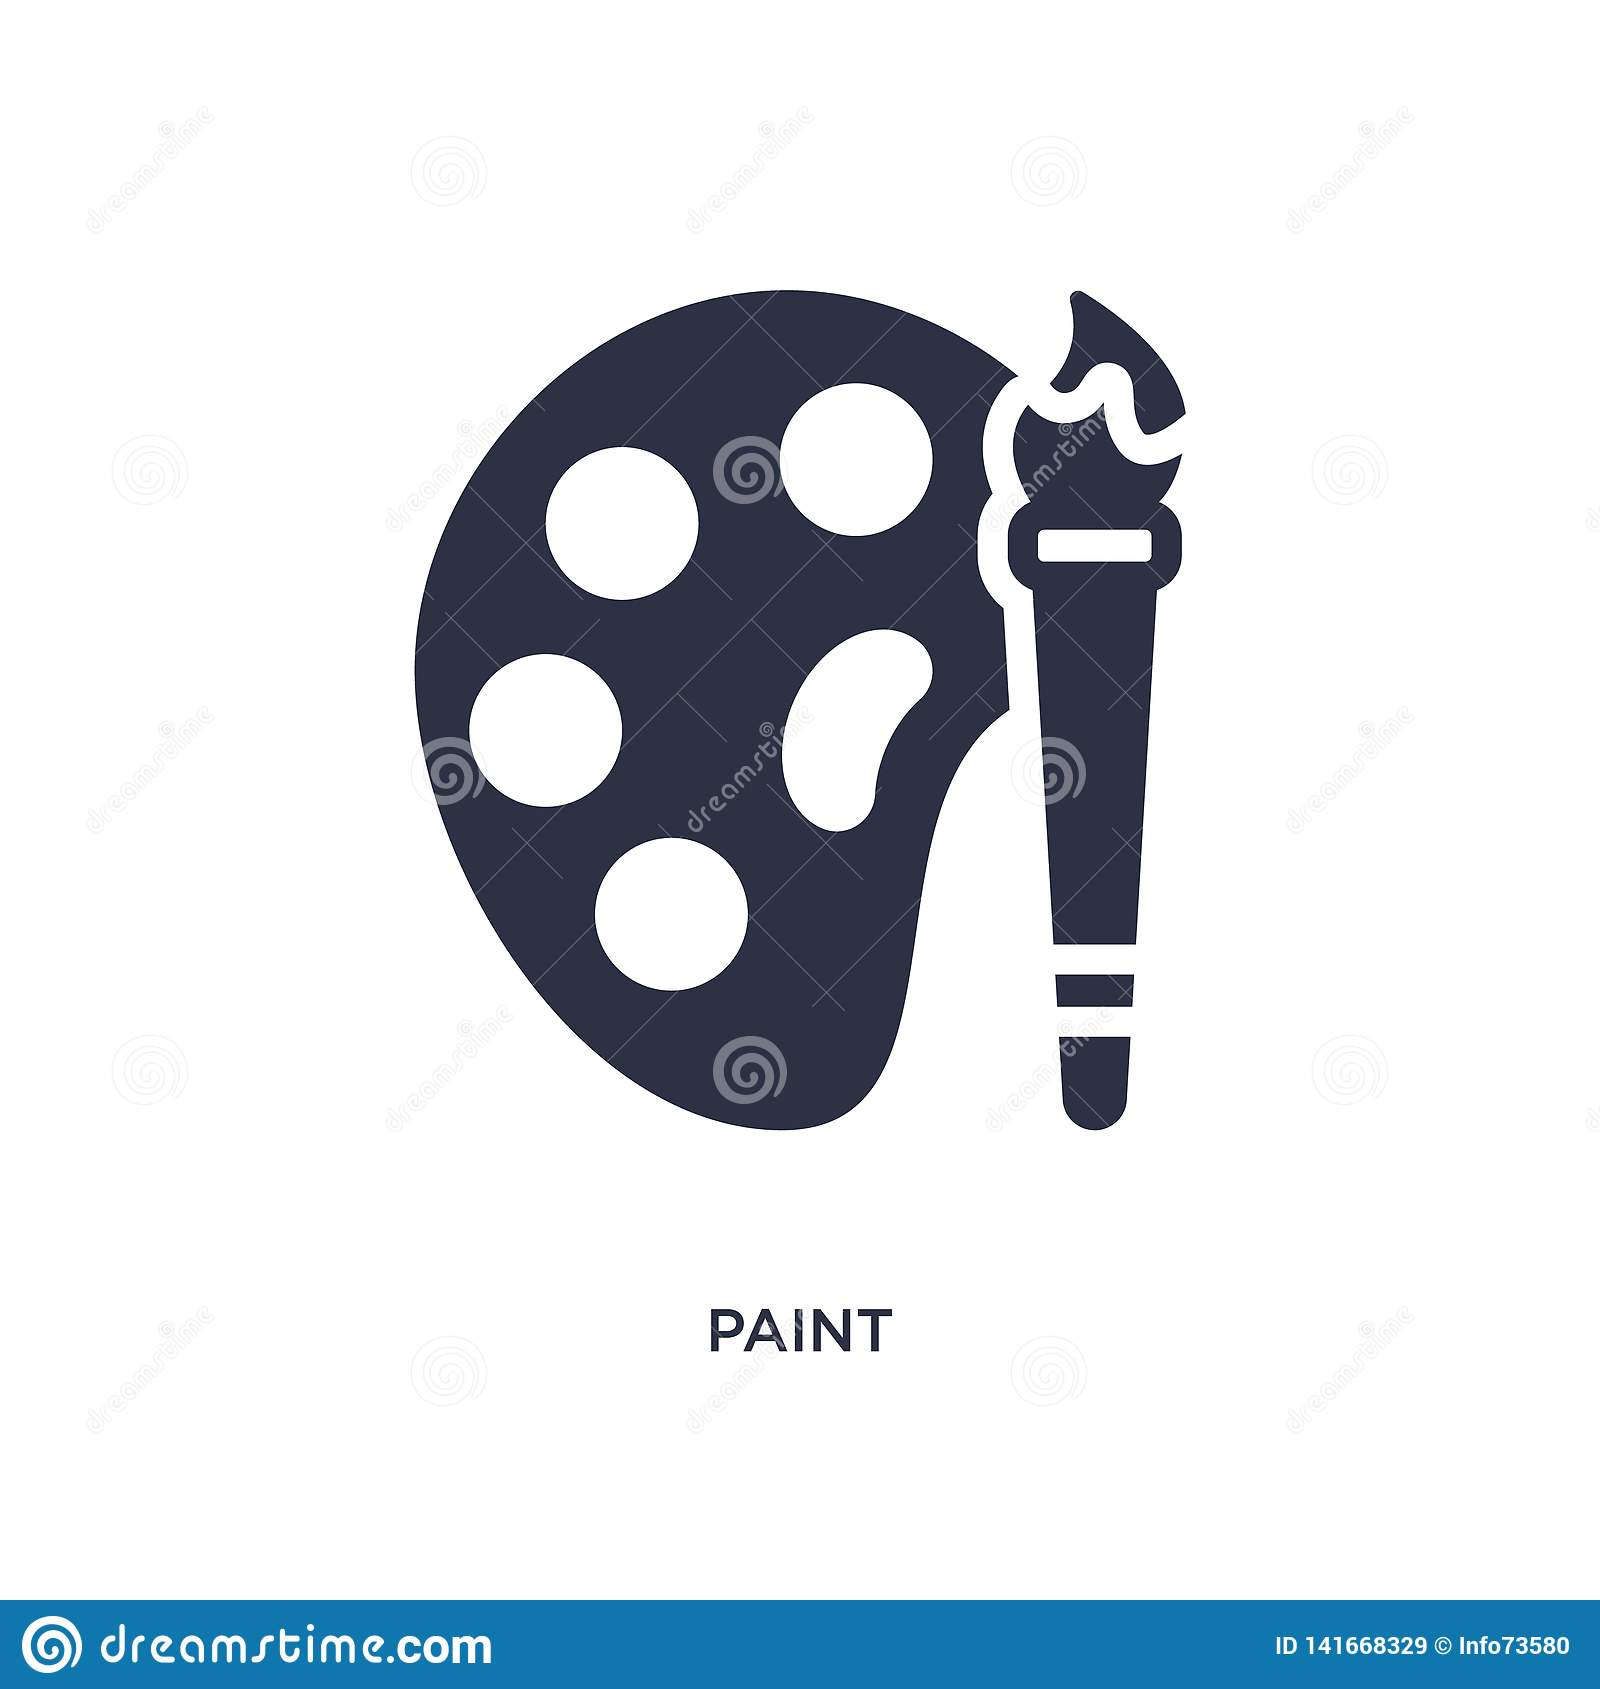 paint icon on white background. Simple element illustration from user interface concept